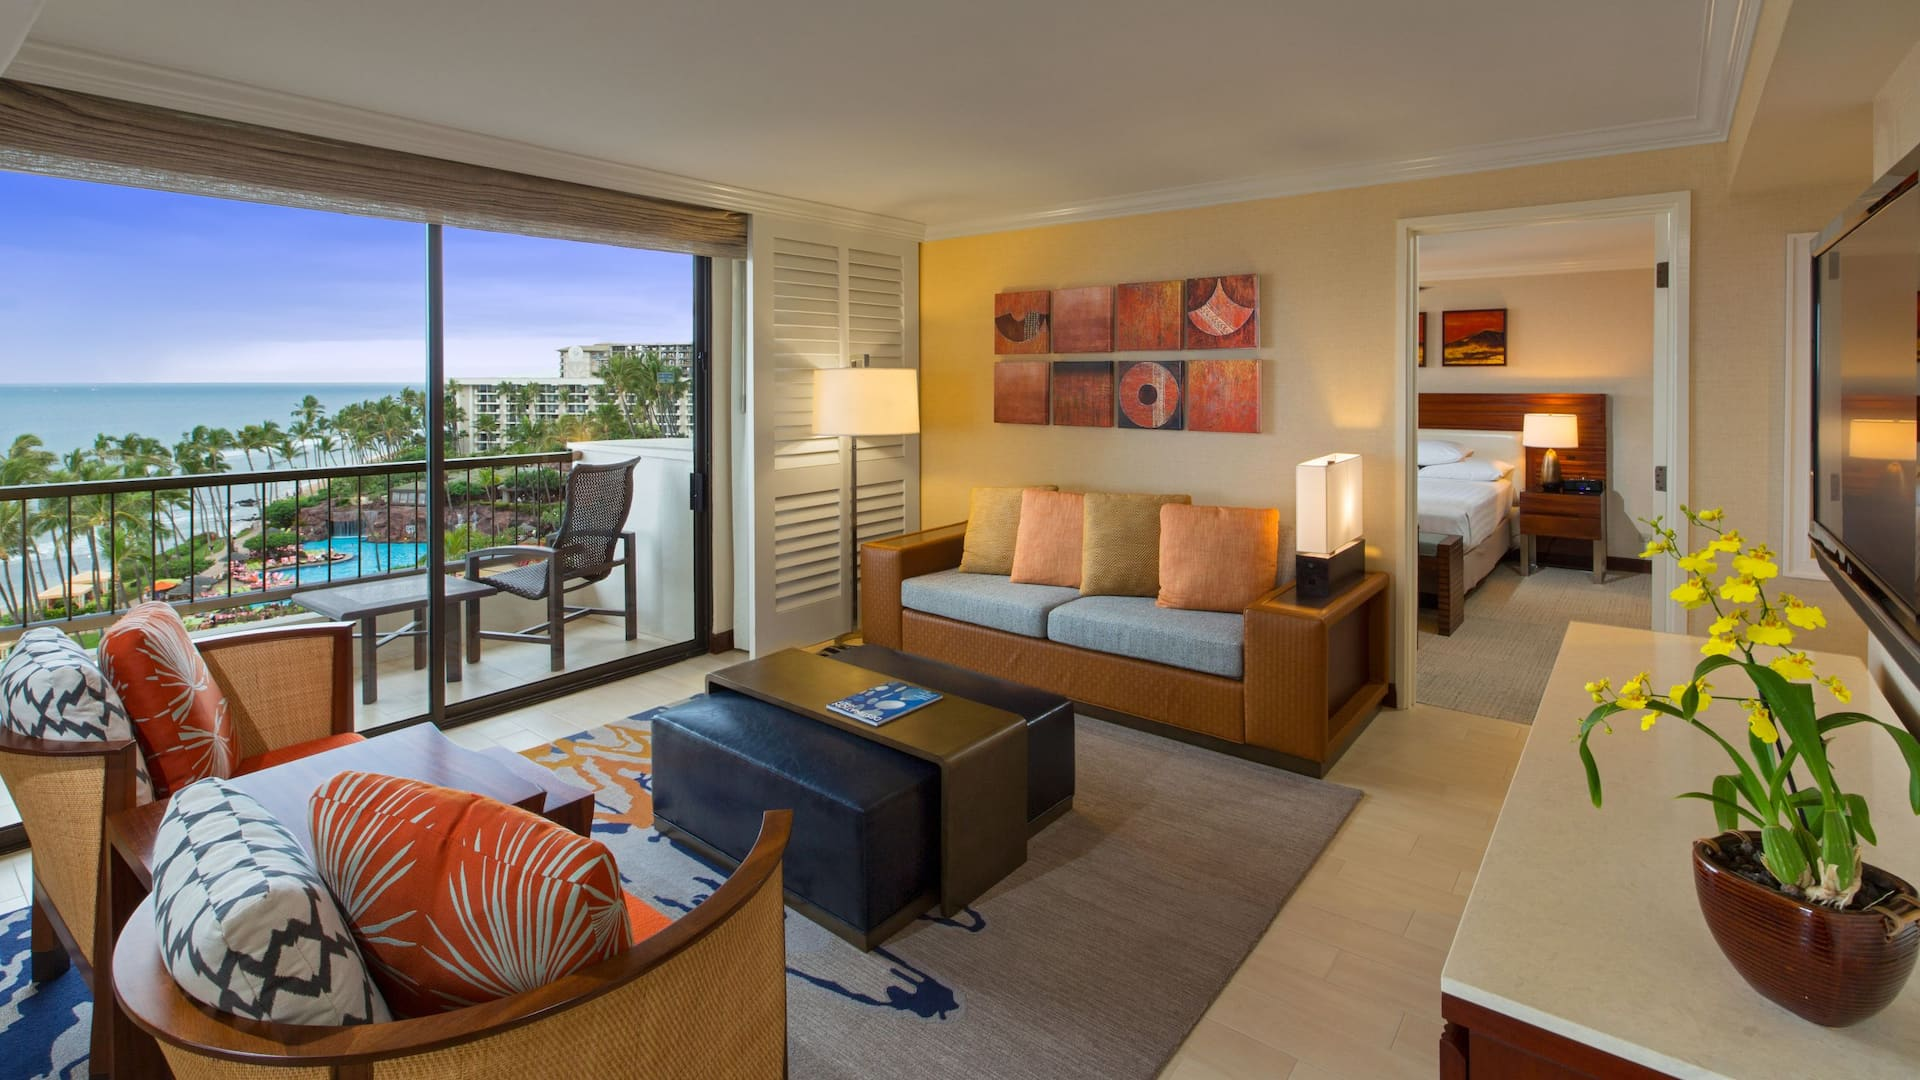 Hotel Suites Maui Hyatt Regency Maui Resort and Spa